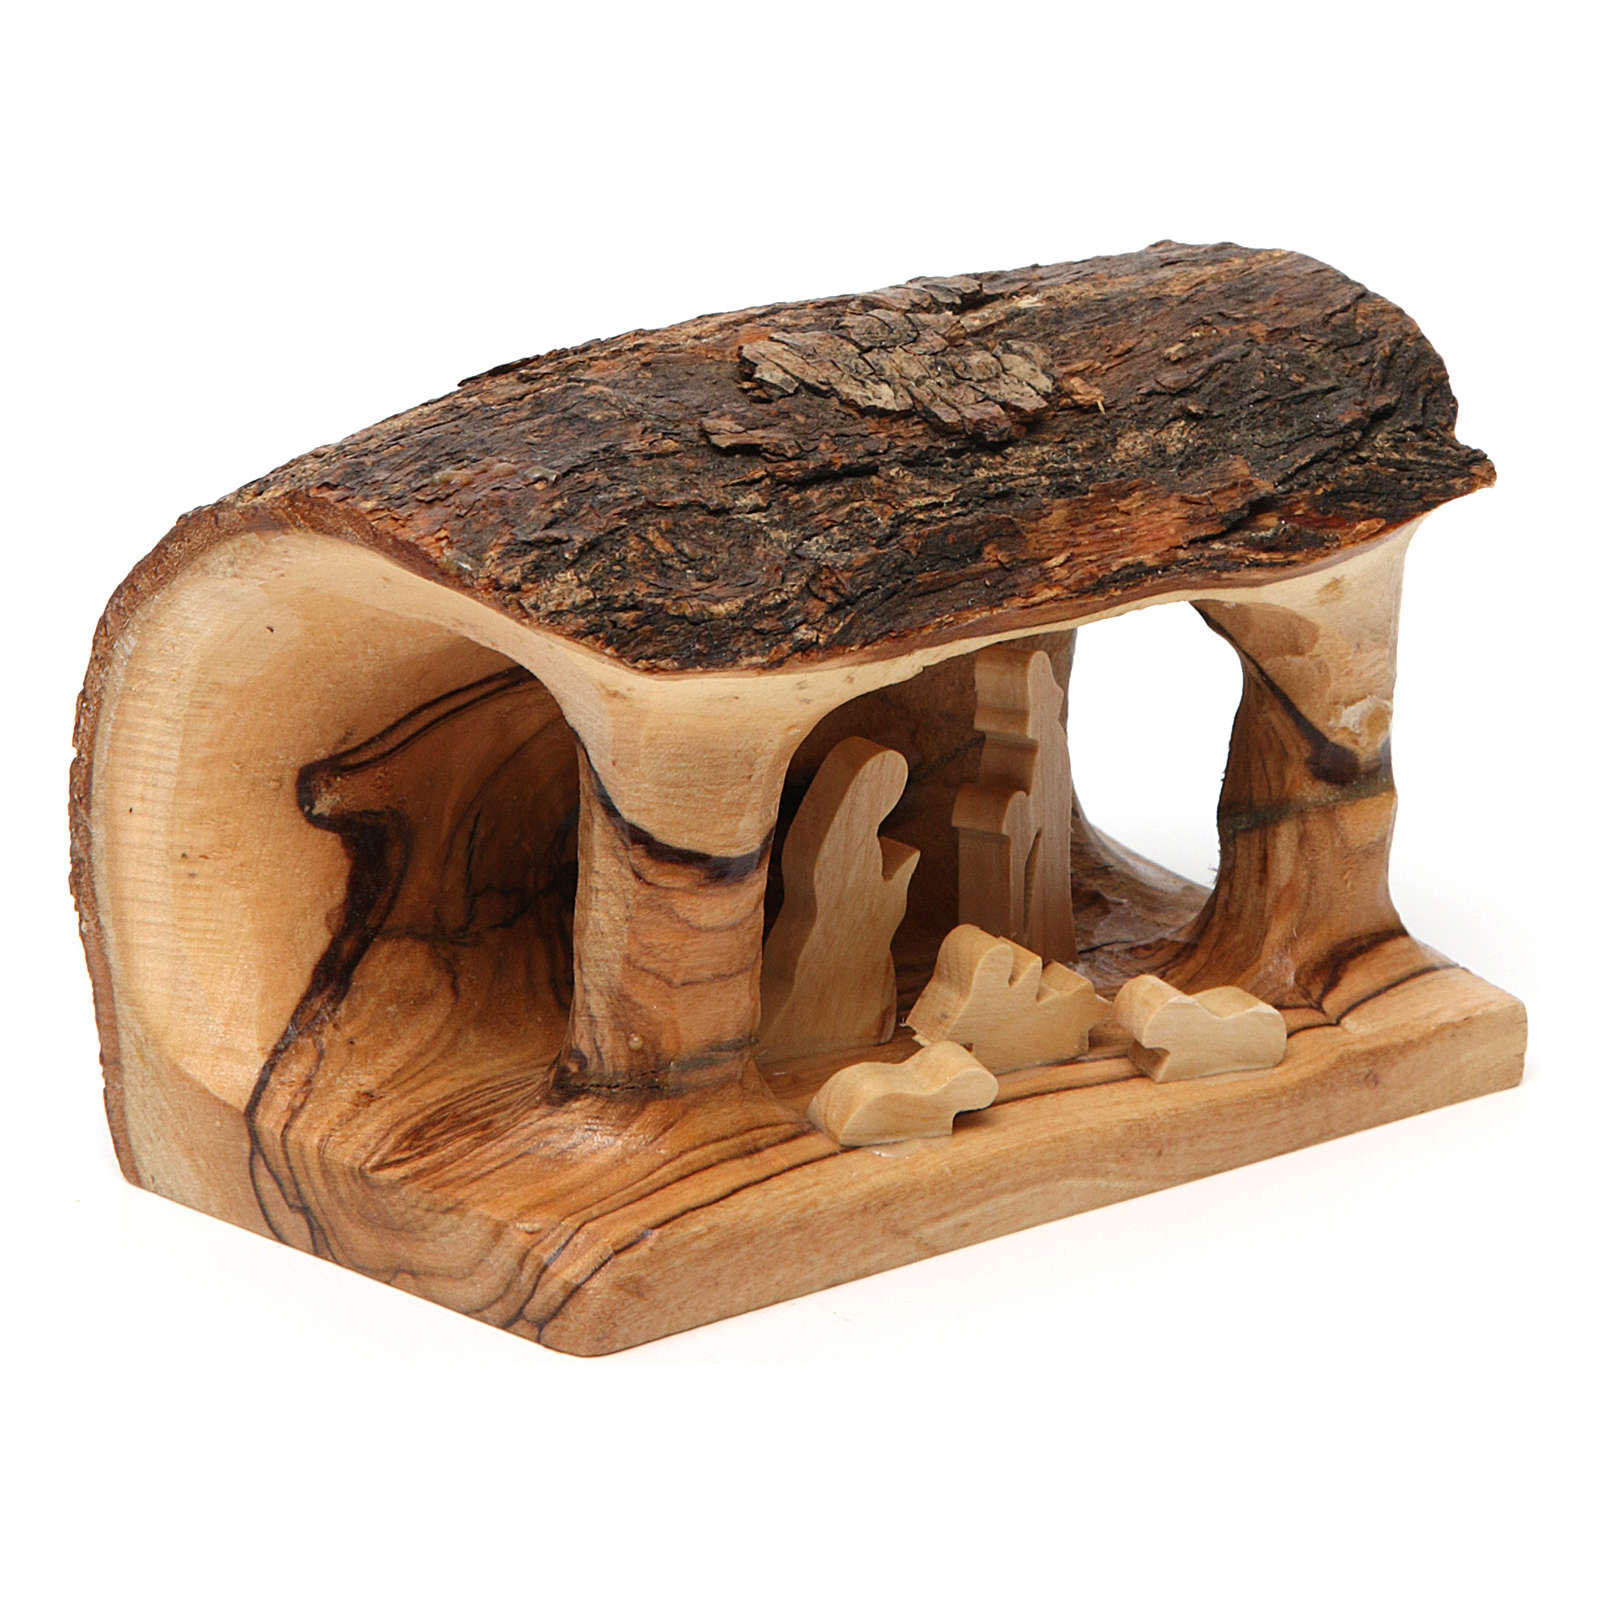 Olive wood Bethlehem nativity set 4